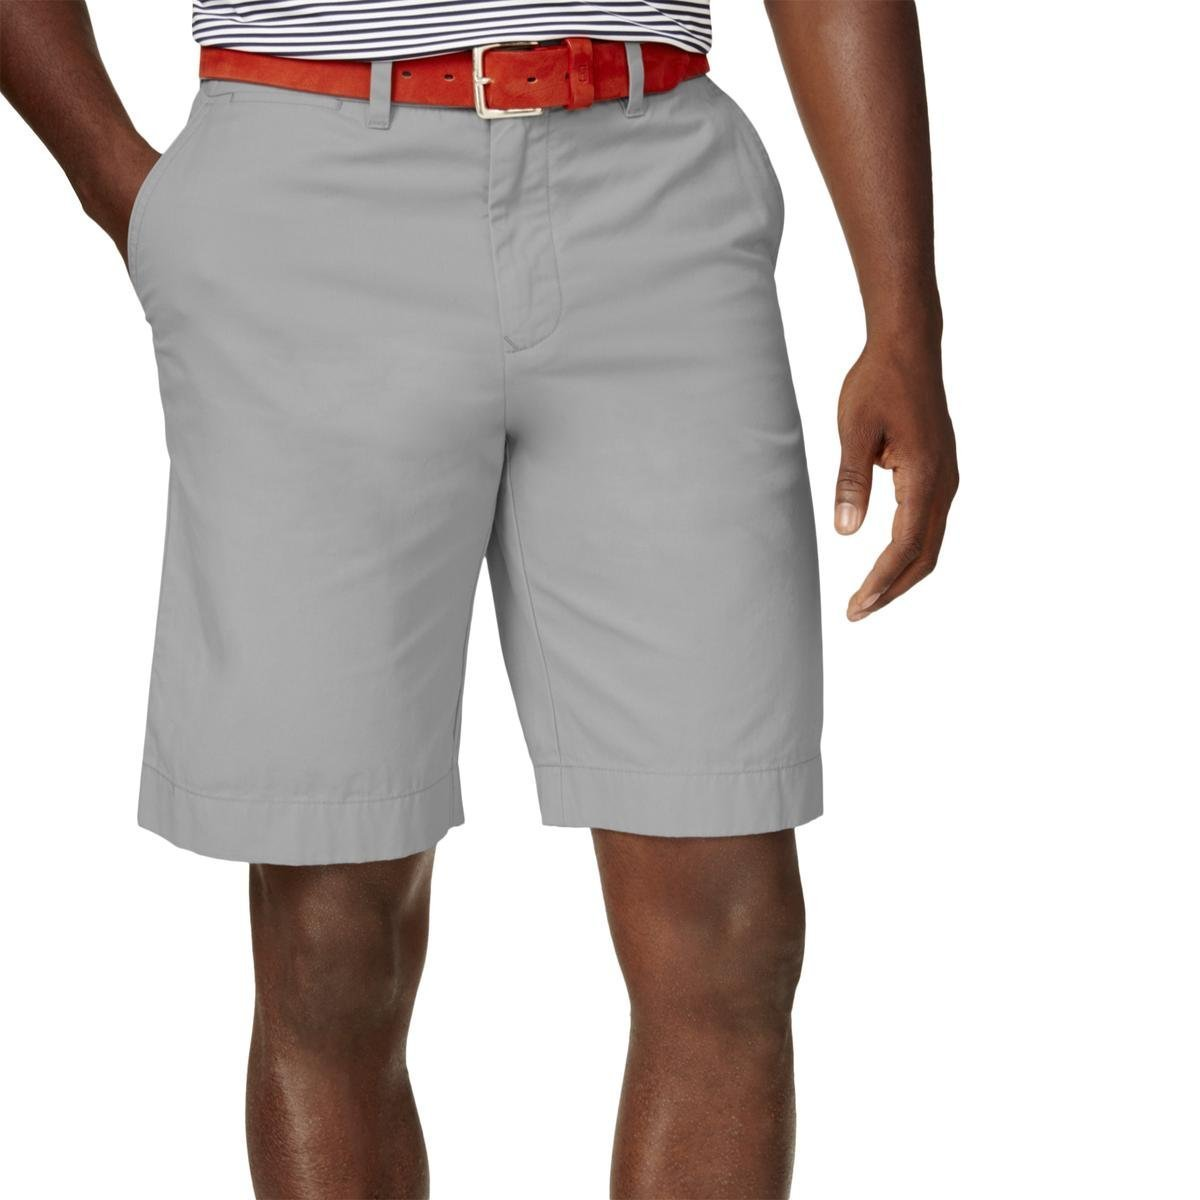 Tommy Hilfiger Mens Classic Fit Lightweight Casual Shorts Gray 40 by Tommy Hilfiger